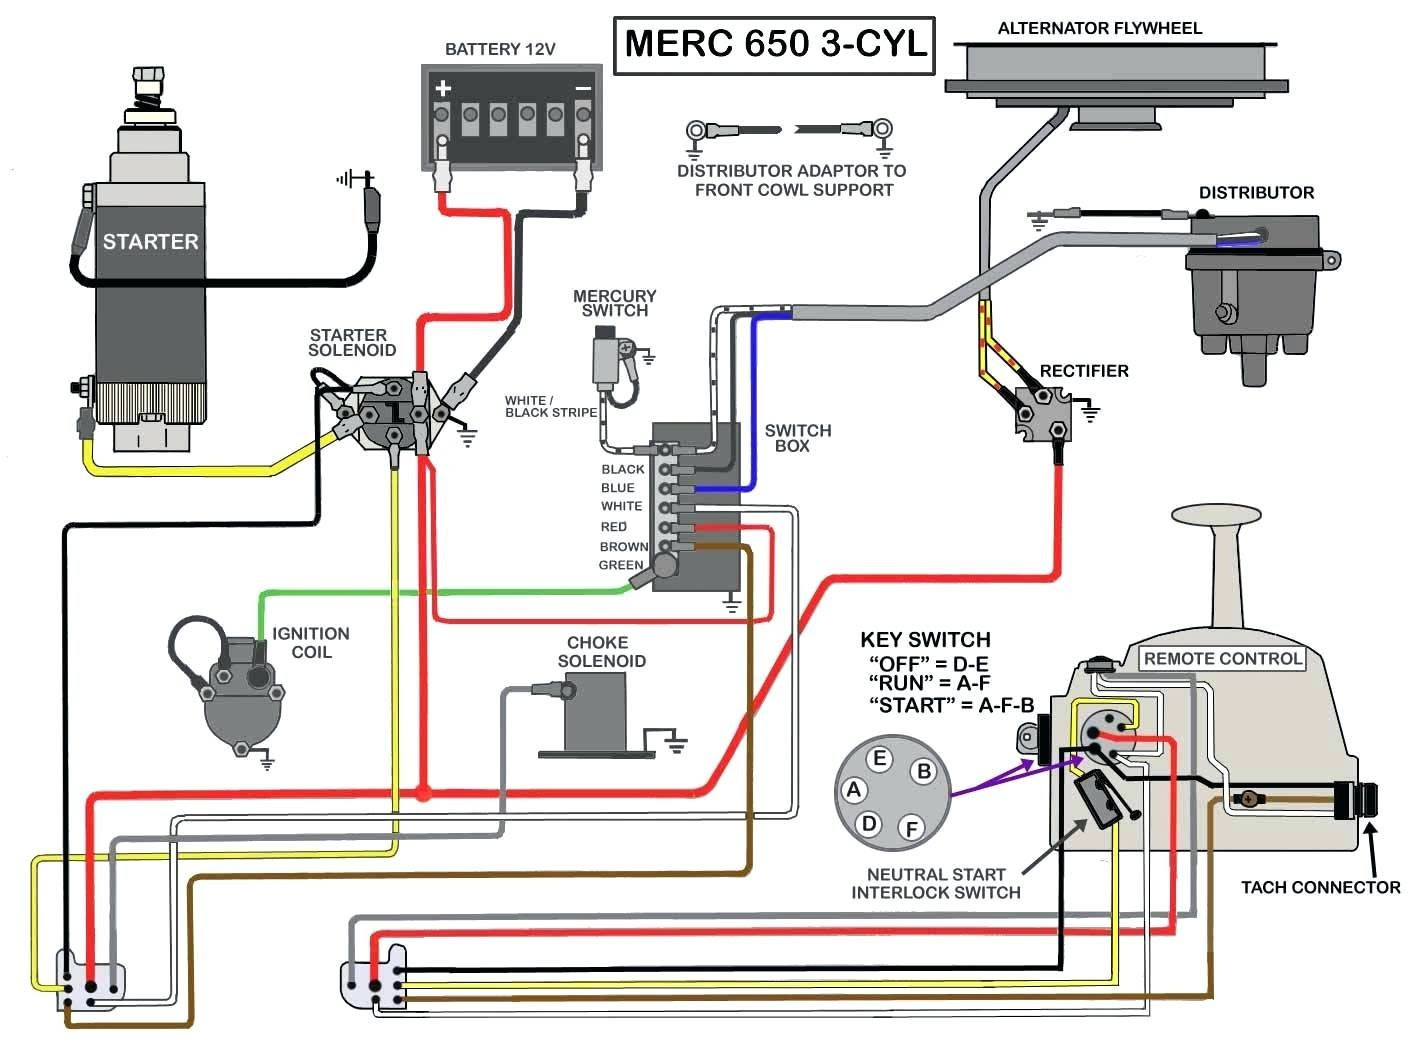 Mercury Outboard Ignition Switch Wiring Diagram - Wiring Site Resource | 1998 Mercury Outboard Wiring Diagram Free Picture |  | Wiring Site Resource